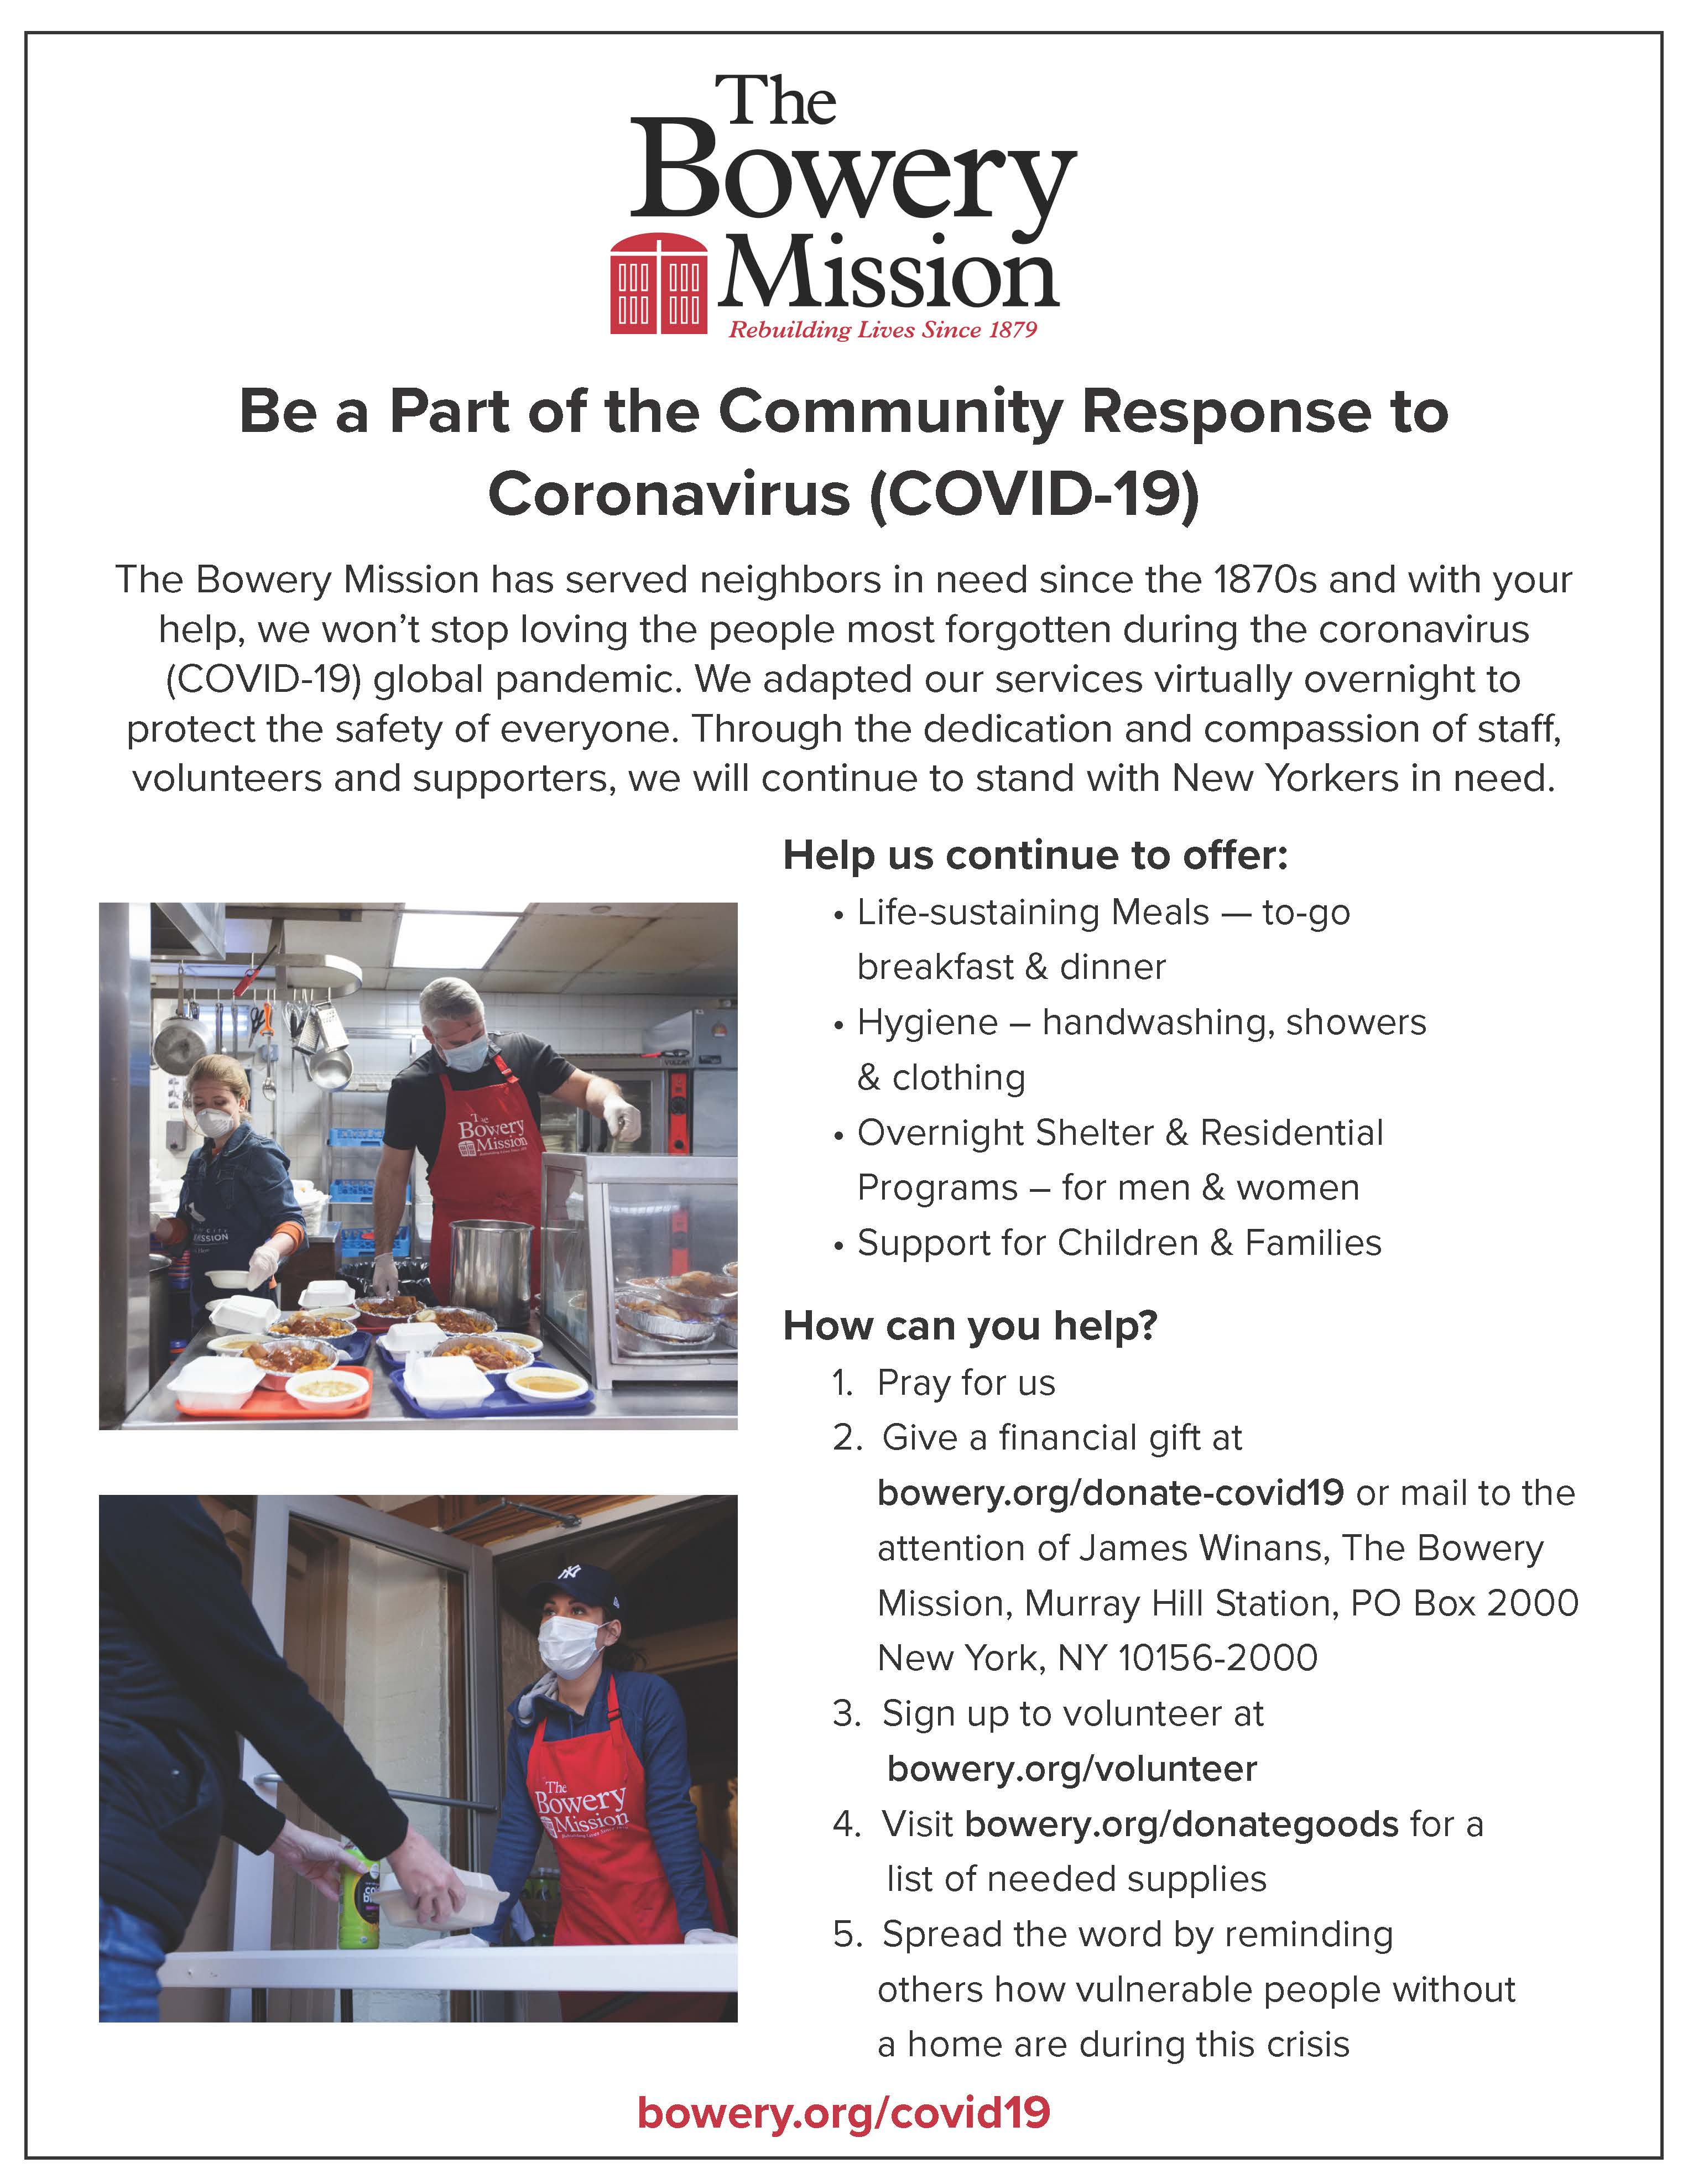 Bowery Mission: Be part of the community Response to Coranavirus (COVID-19).